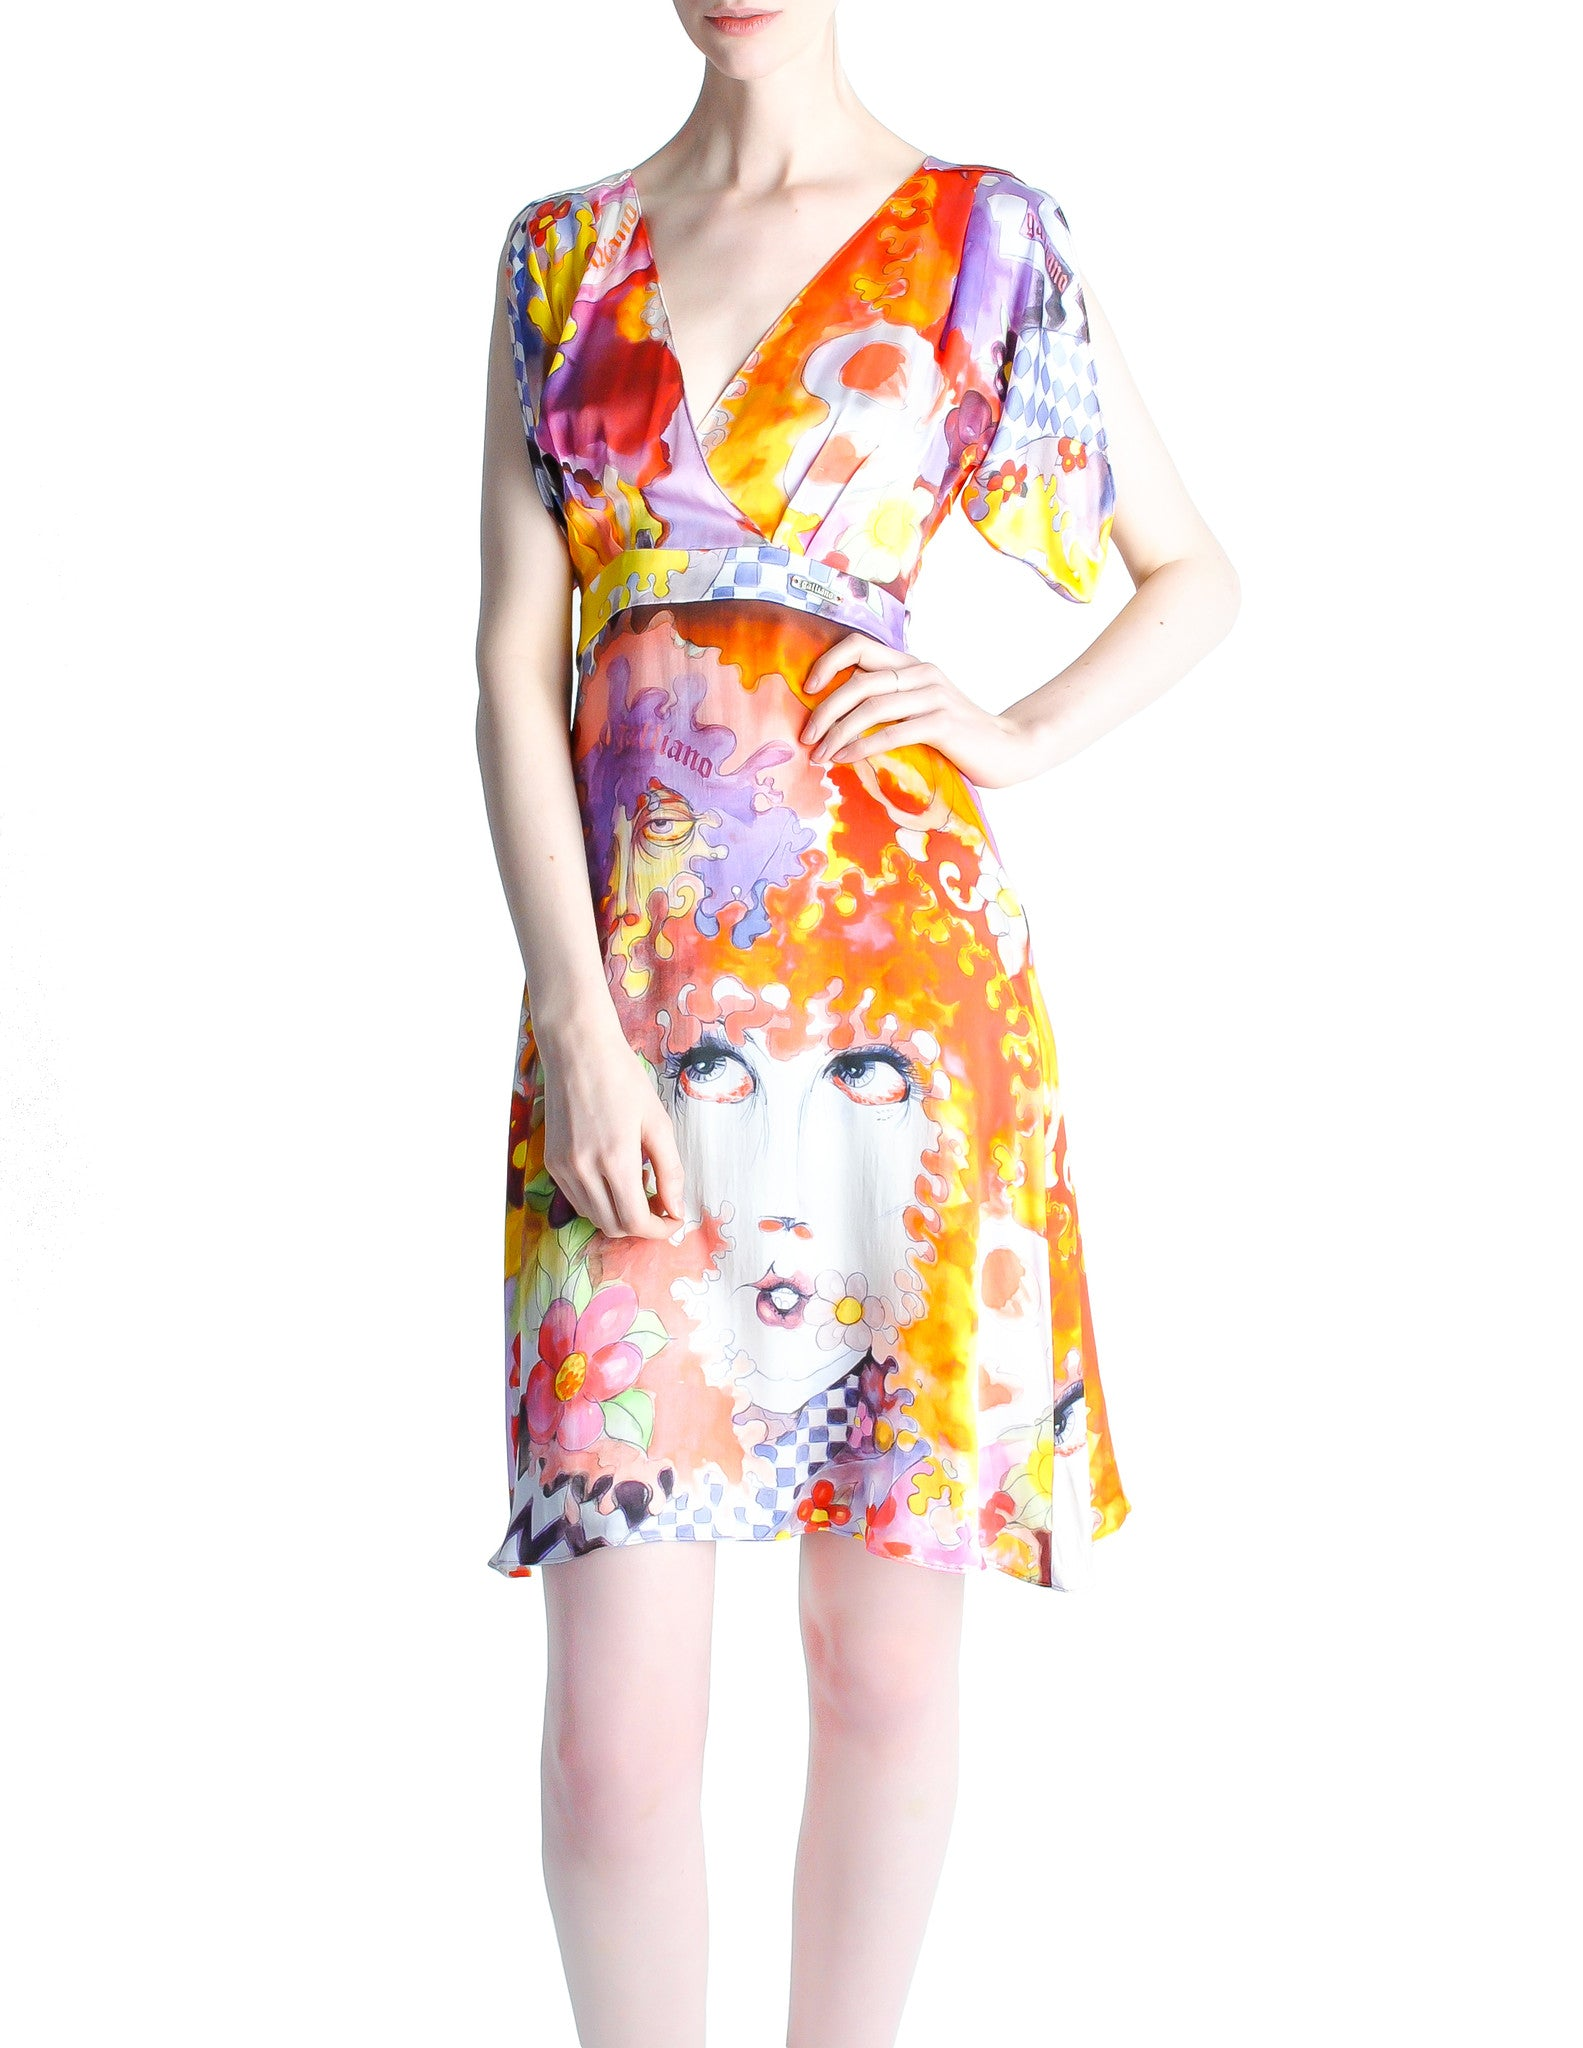 Galliano Vintage Colorful Silk Face Dress - Amarcord Vintage Fashion  - 1